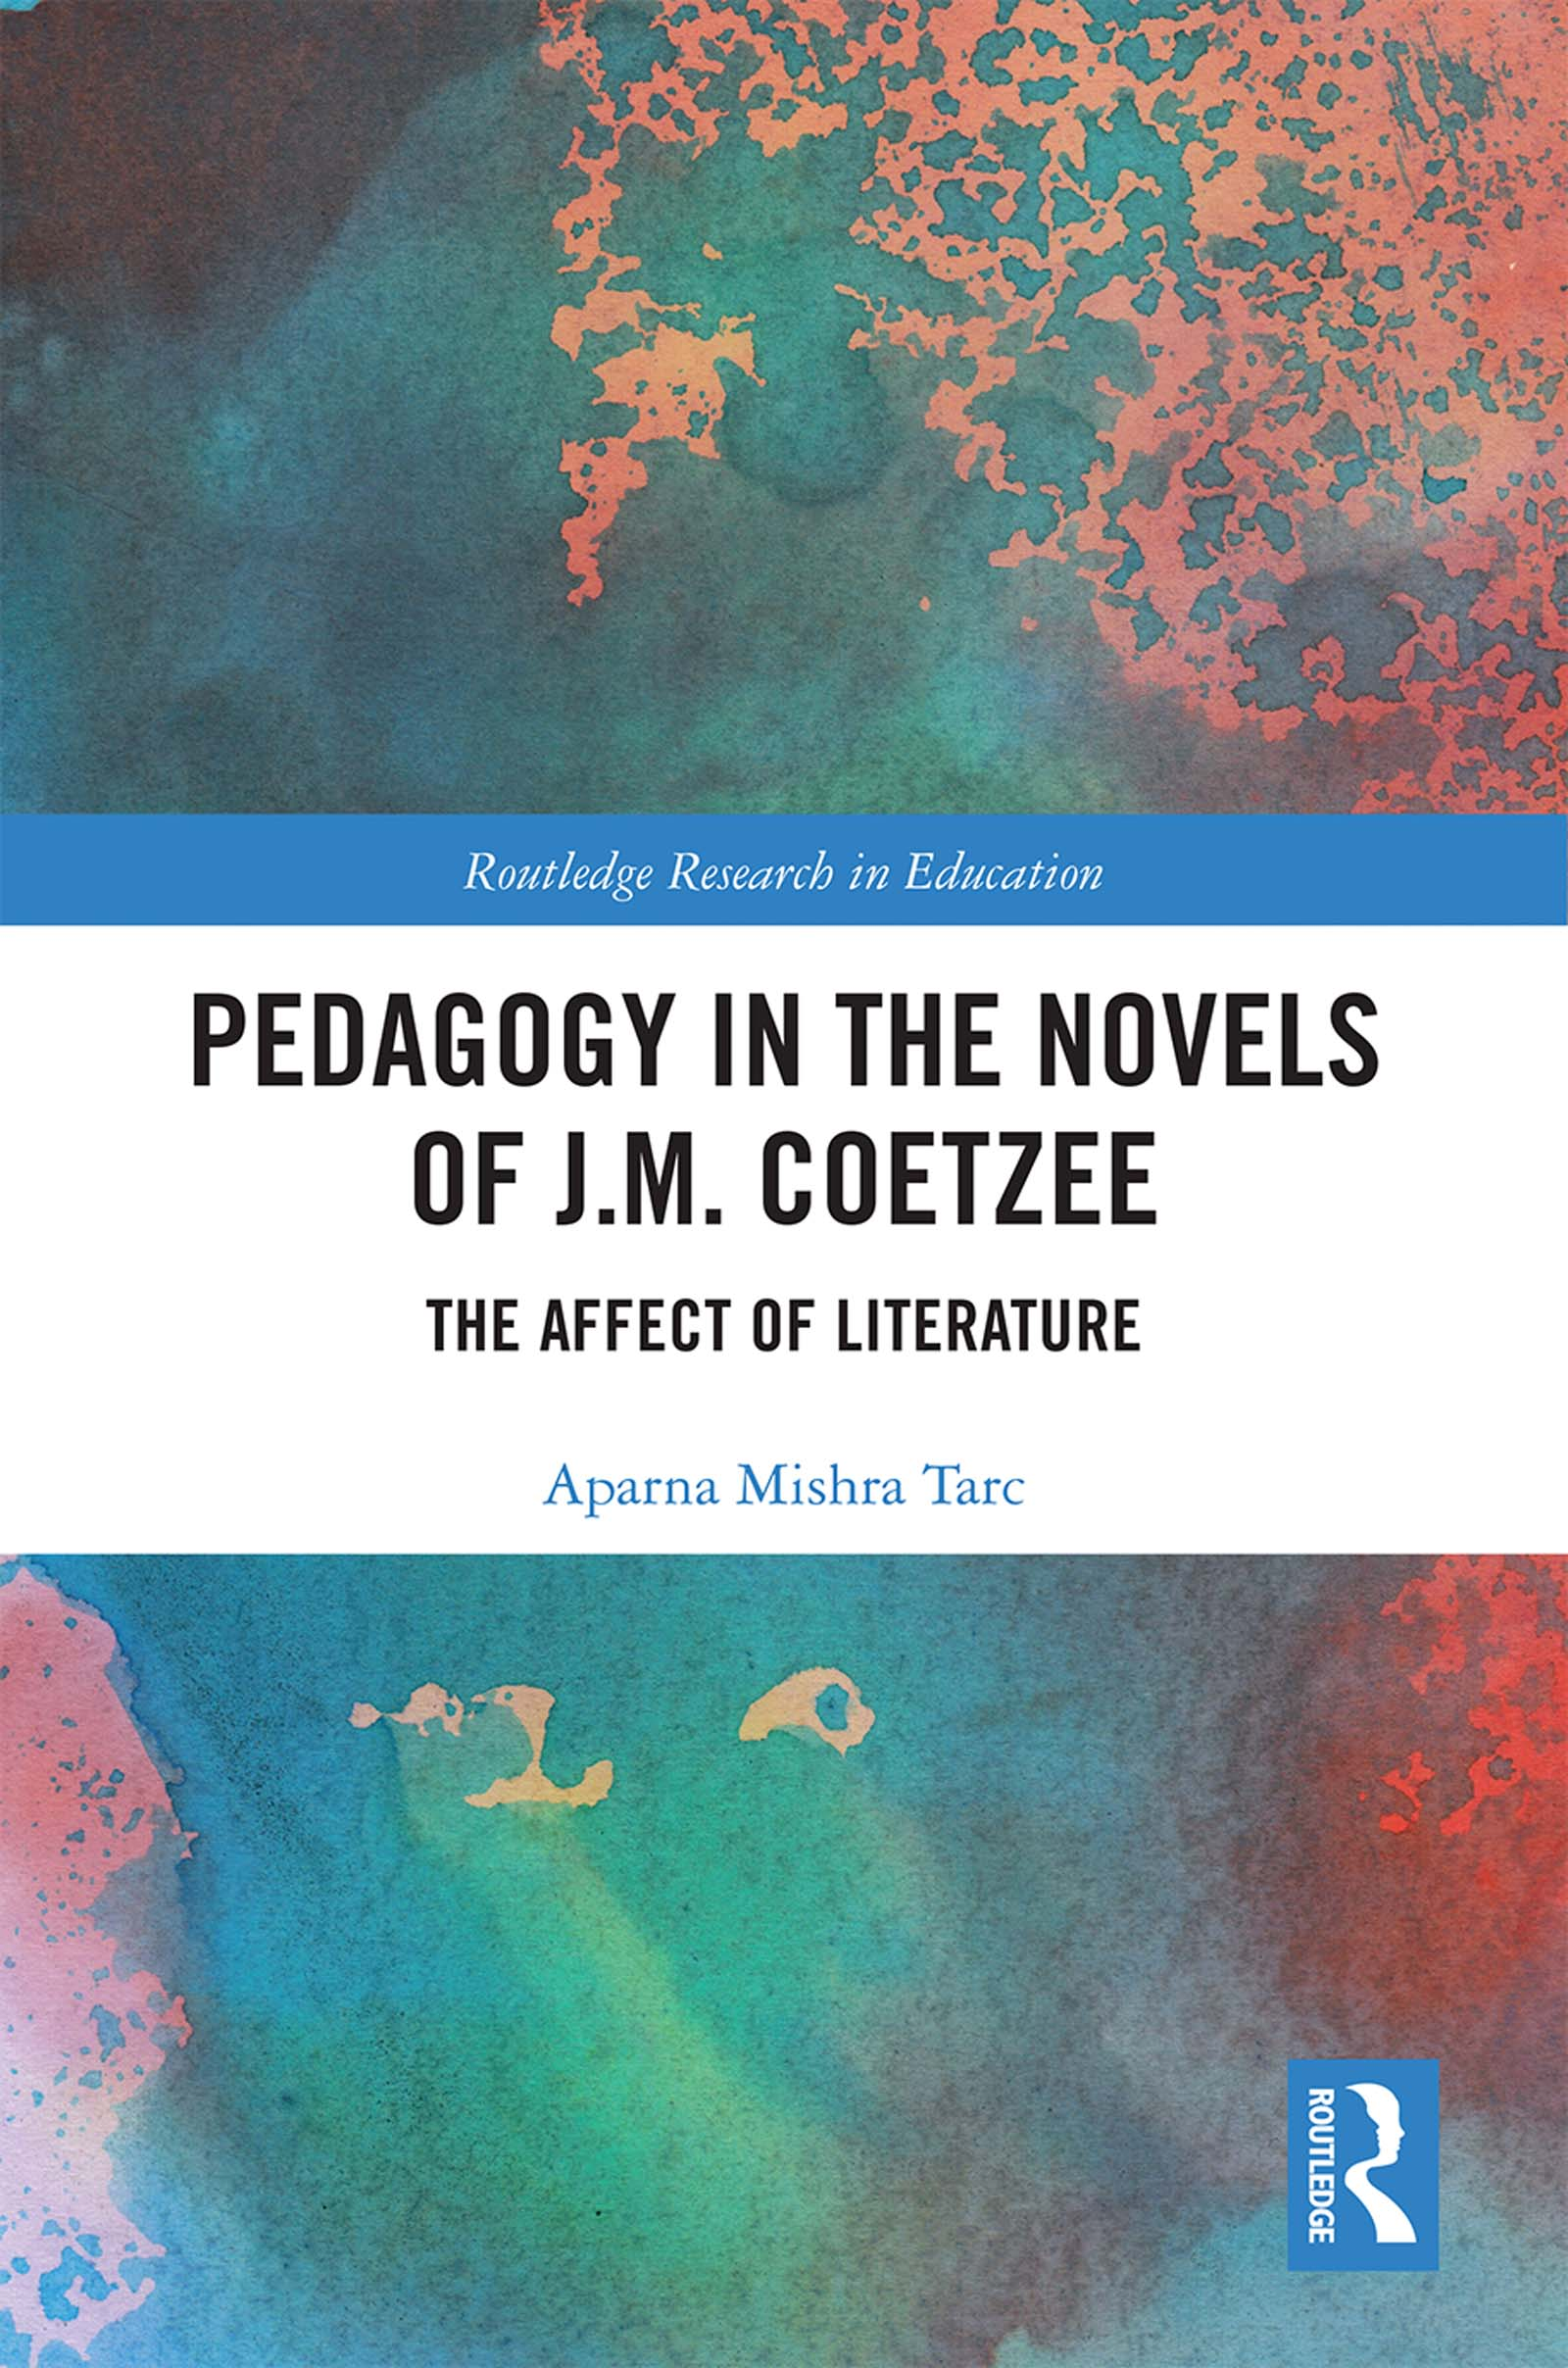 Pedagogy in the Novels of J.M. Coetzee